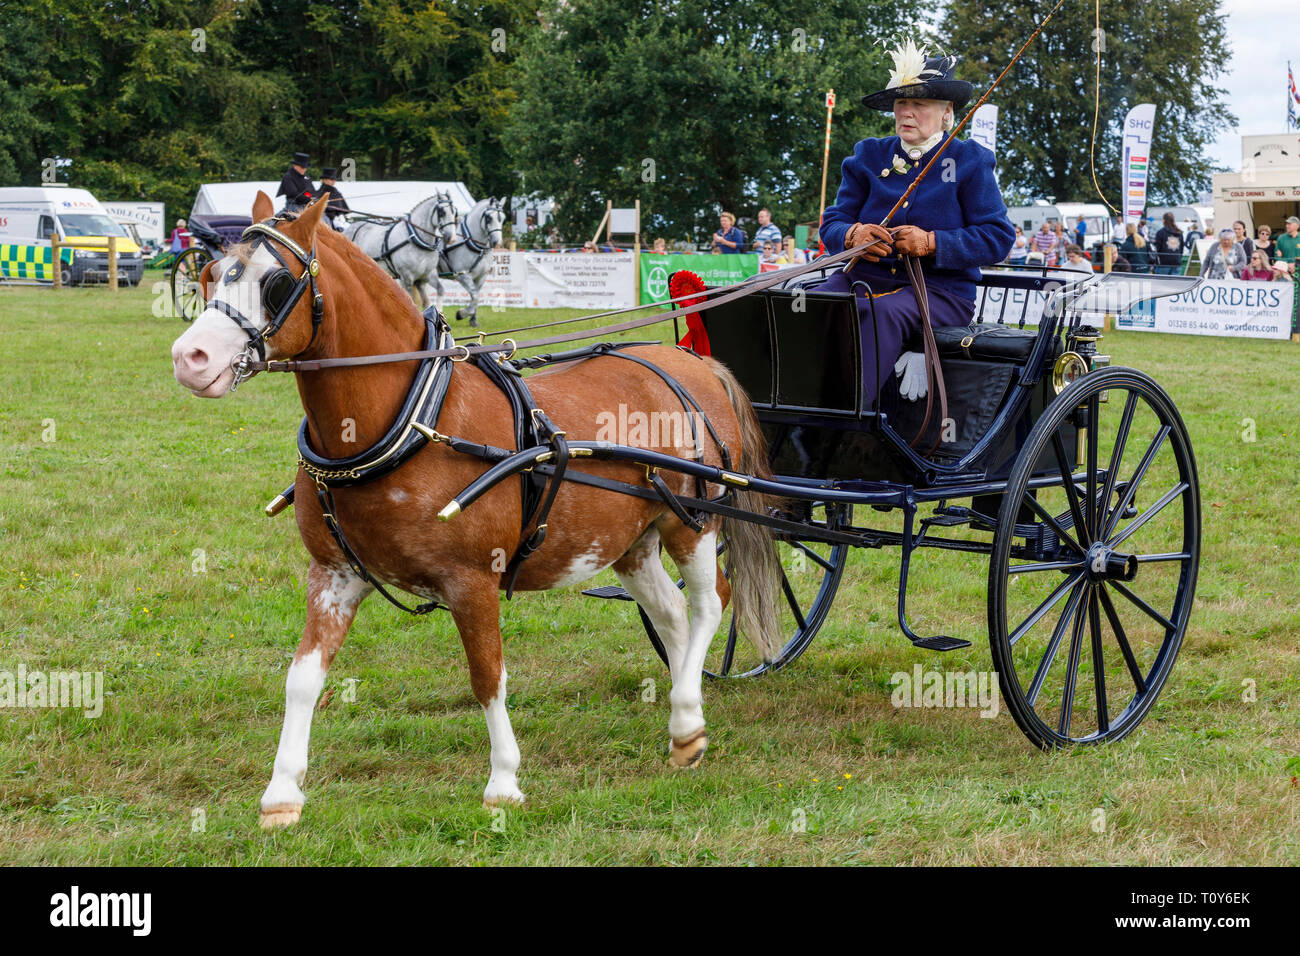 Pony and trap display and competition at the 2018 Aylsham Agricultural Show, Norfolk, UK. - Stock Image